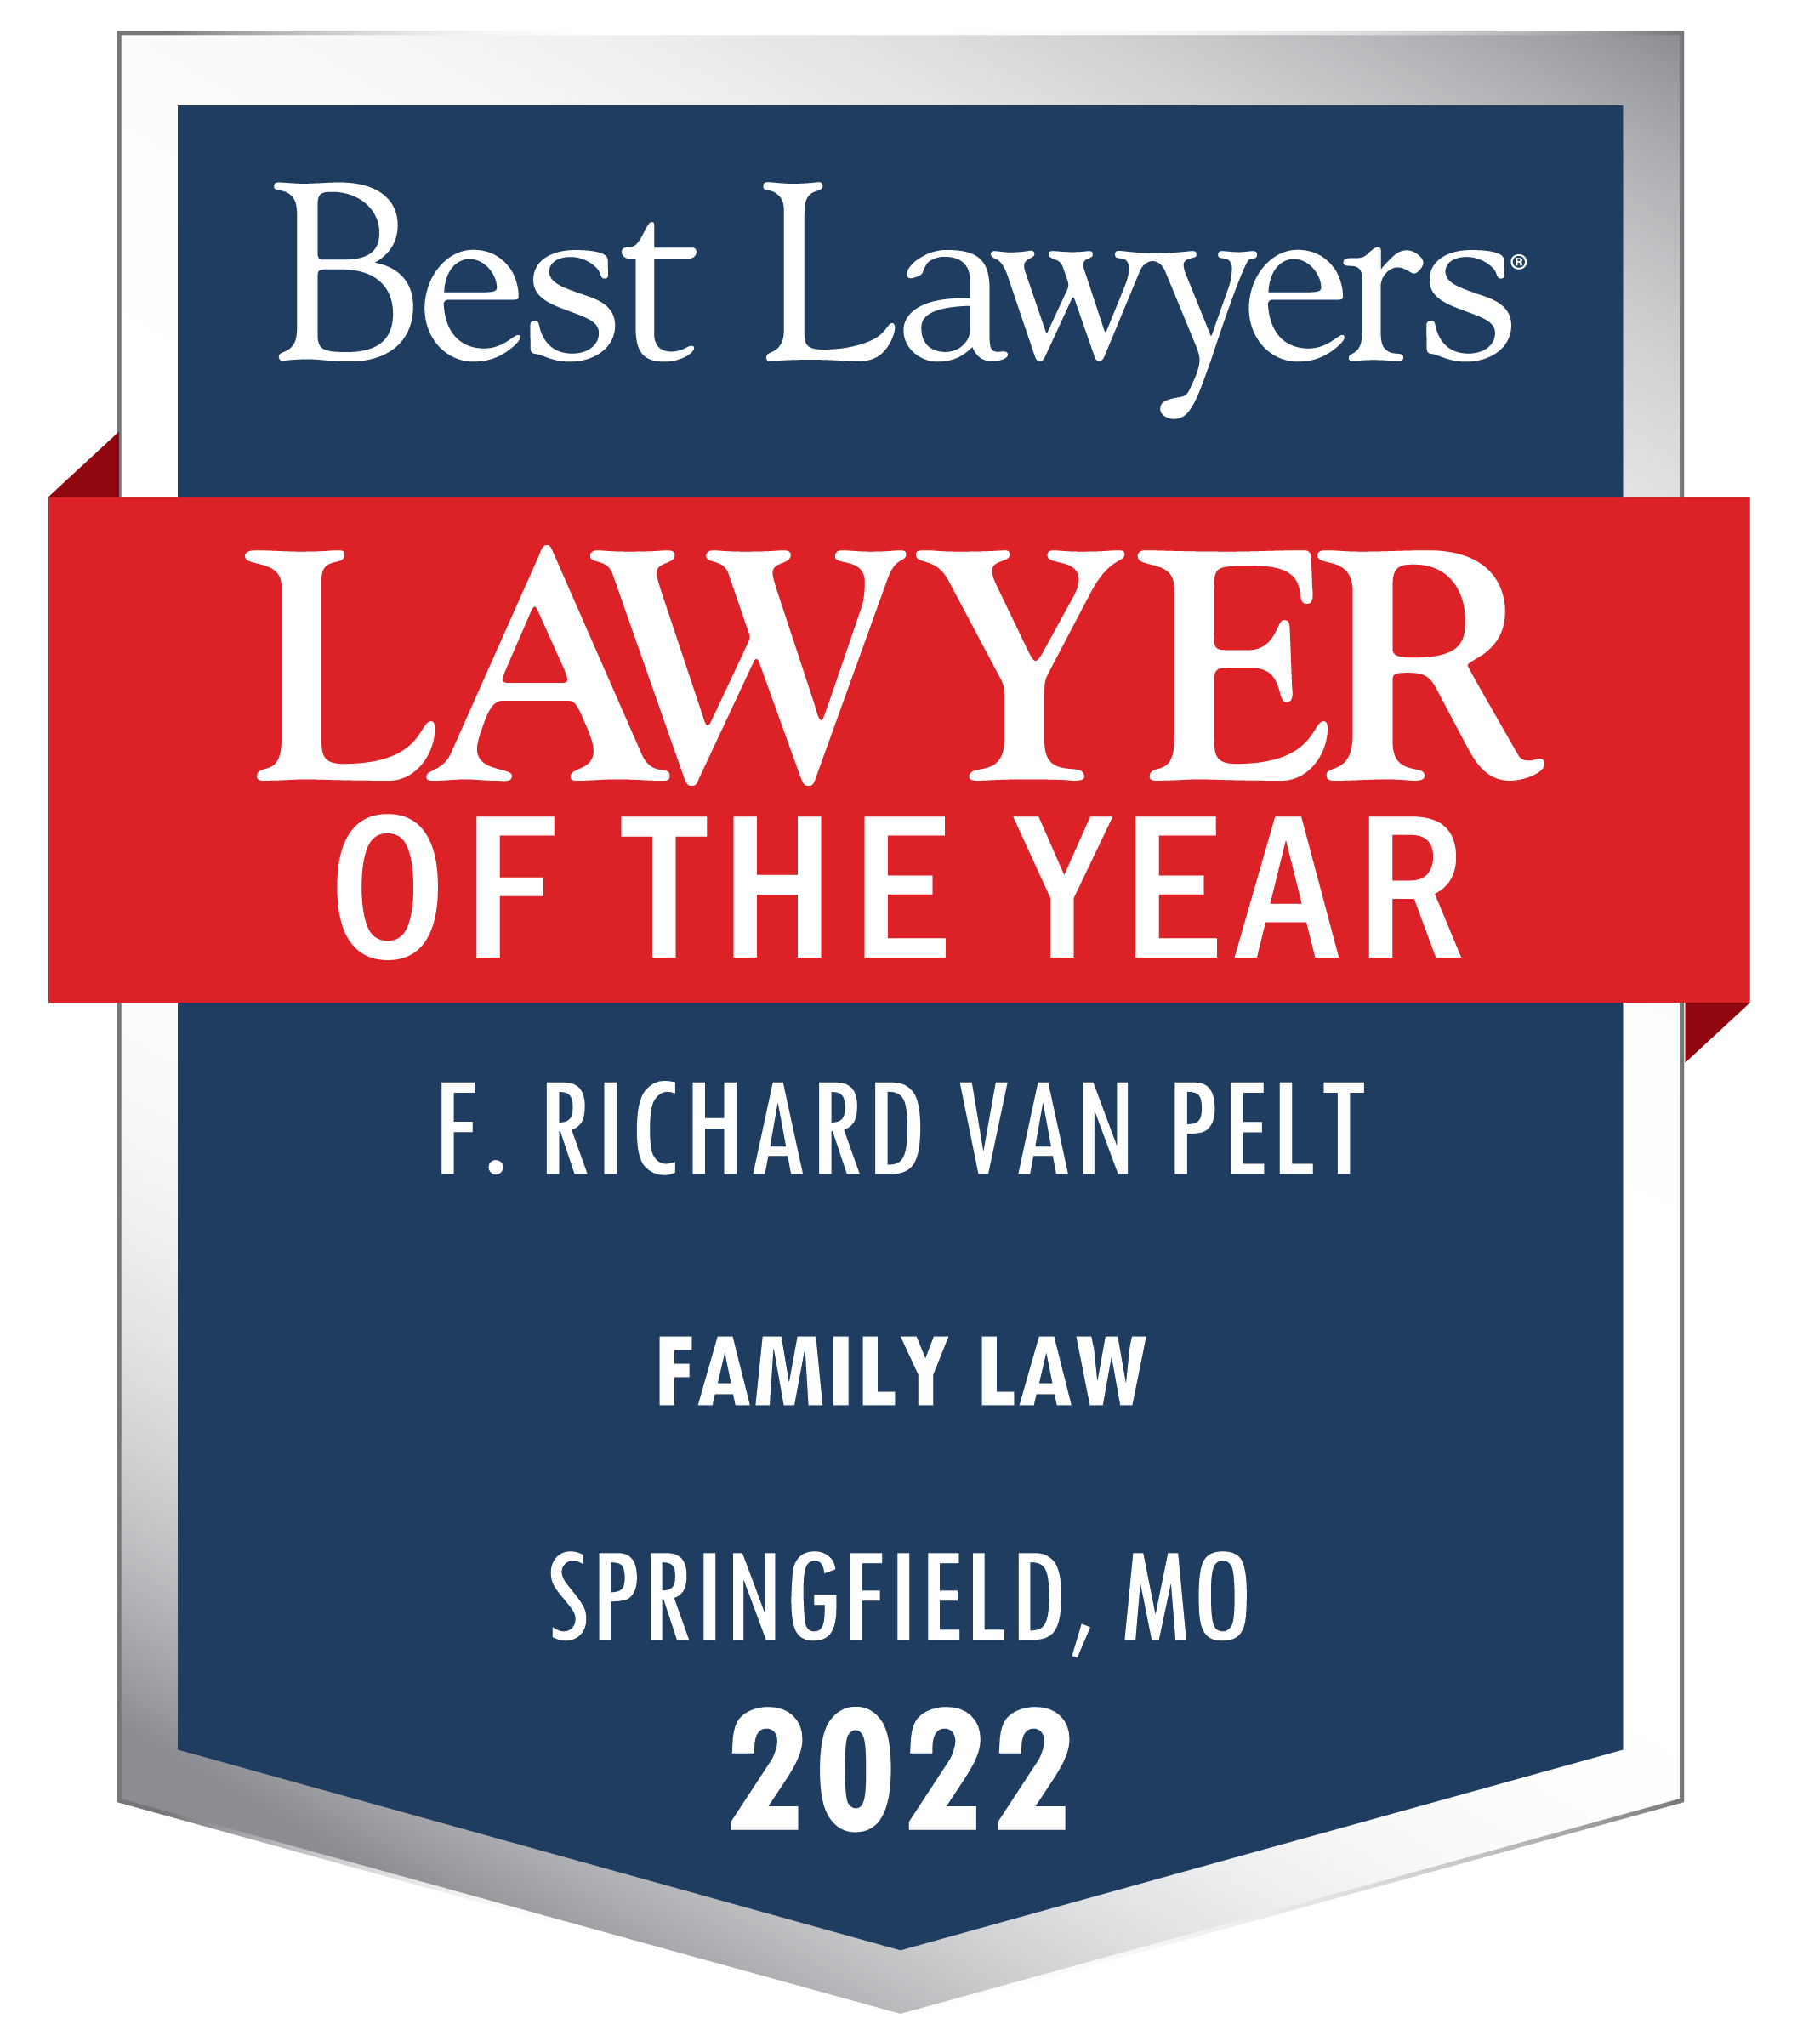 Best Lawyers - _Lawyer of the Year_ Contemporary Logo